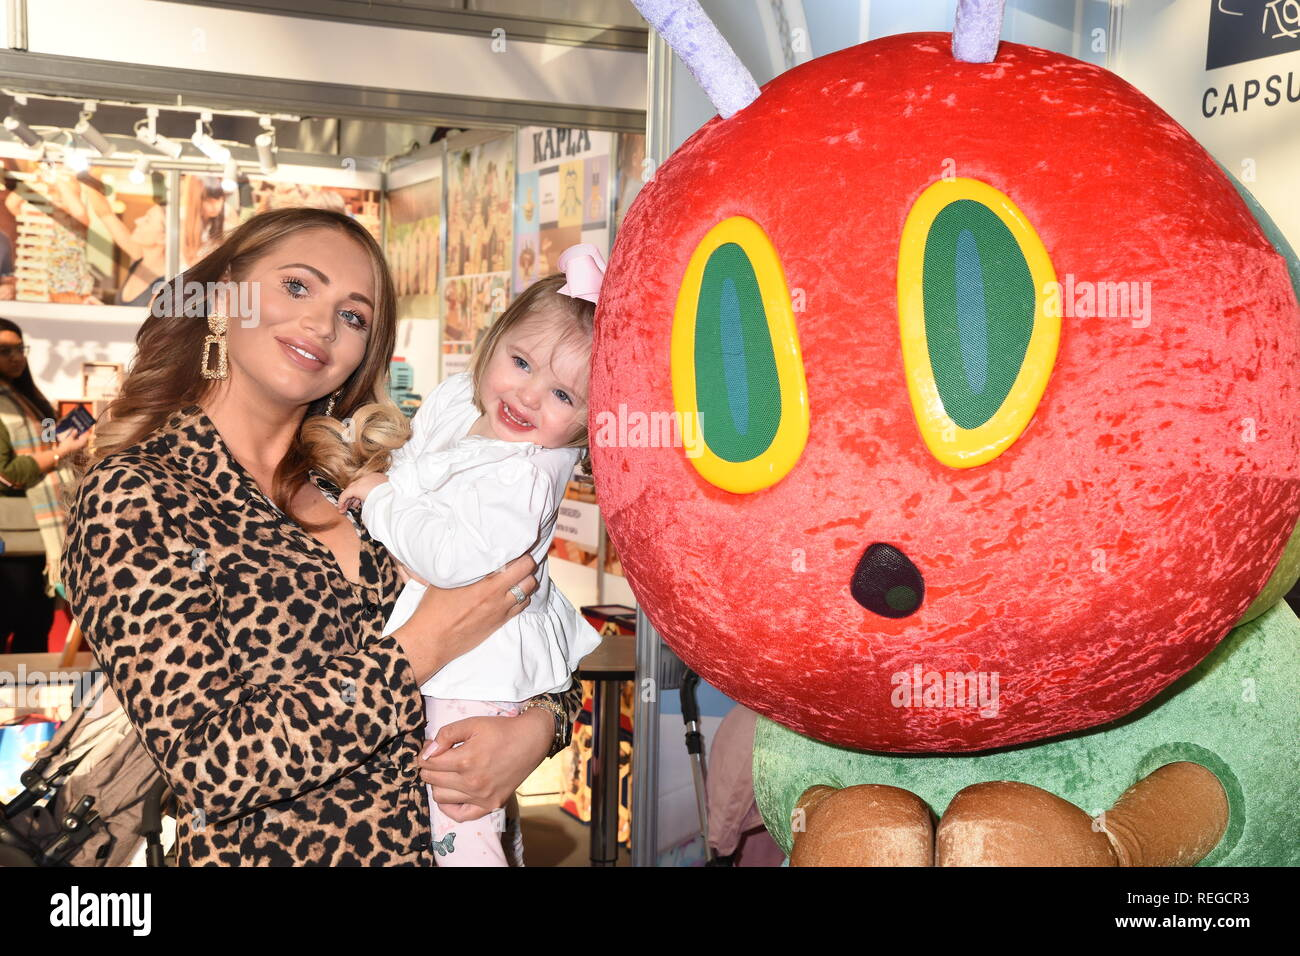 22nd January, 2019. Amy Childs and daughter Polly poses with the Hungry Caterpillar, Roma Pram Stand, The Toy Fair, Olympia, London. UK  Credit: michael melia/Alamy Live News - Stock Image